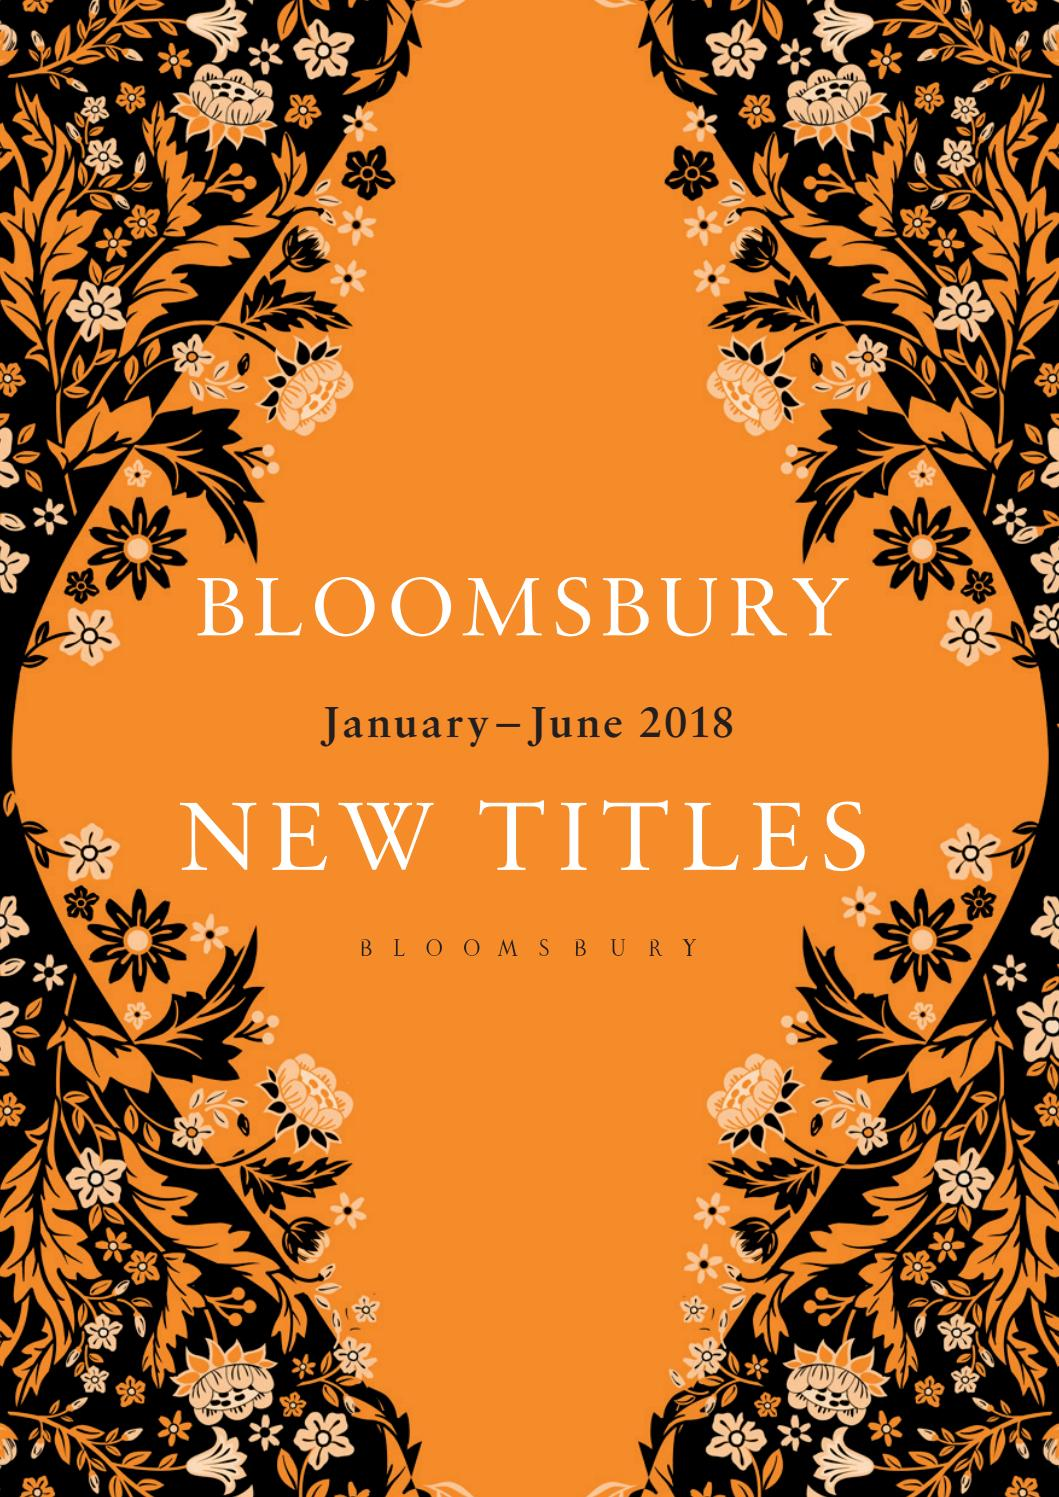 e2b51d35a Bloomsbury Adult New Titles January - June 2018 by Bloomsbury Publishing -  issuu